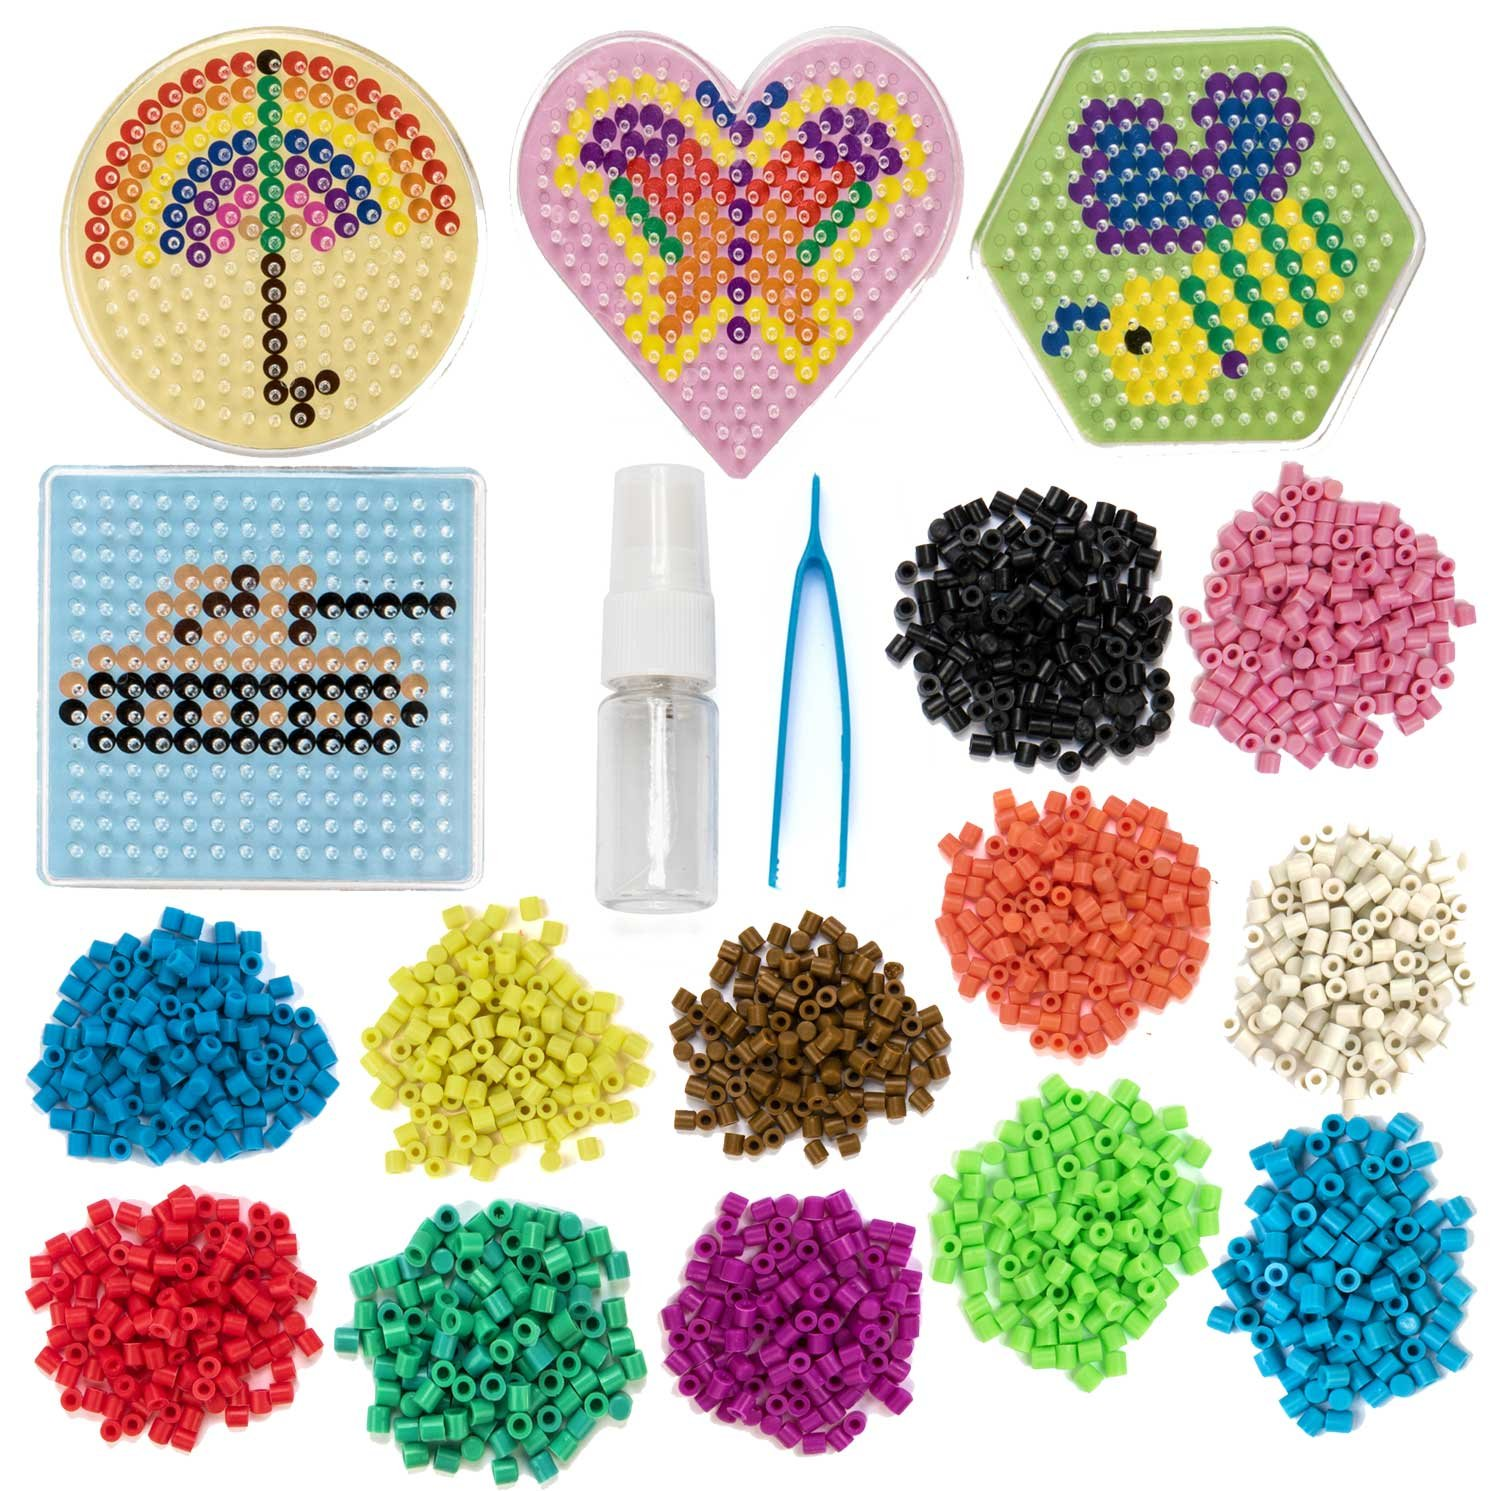 Peachy Keen Crafts No Iron Fuse Bead Kit - Design, Spray and Stay - Pegboard and Tweezers Included for Craft Lovers